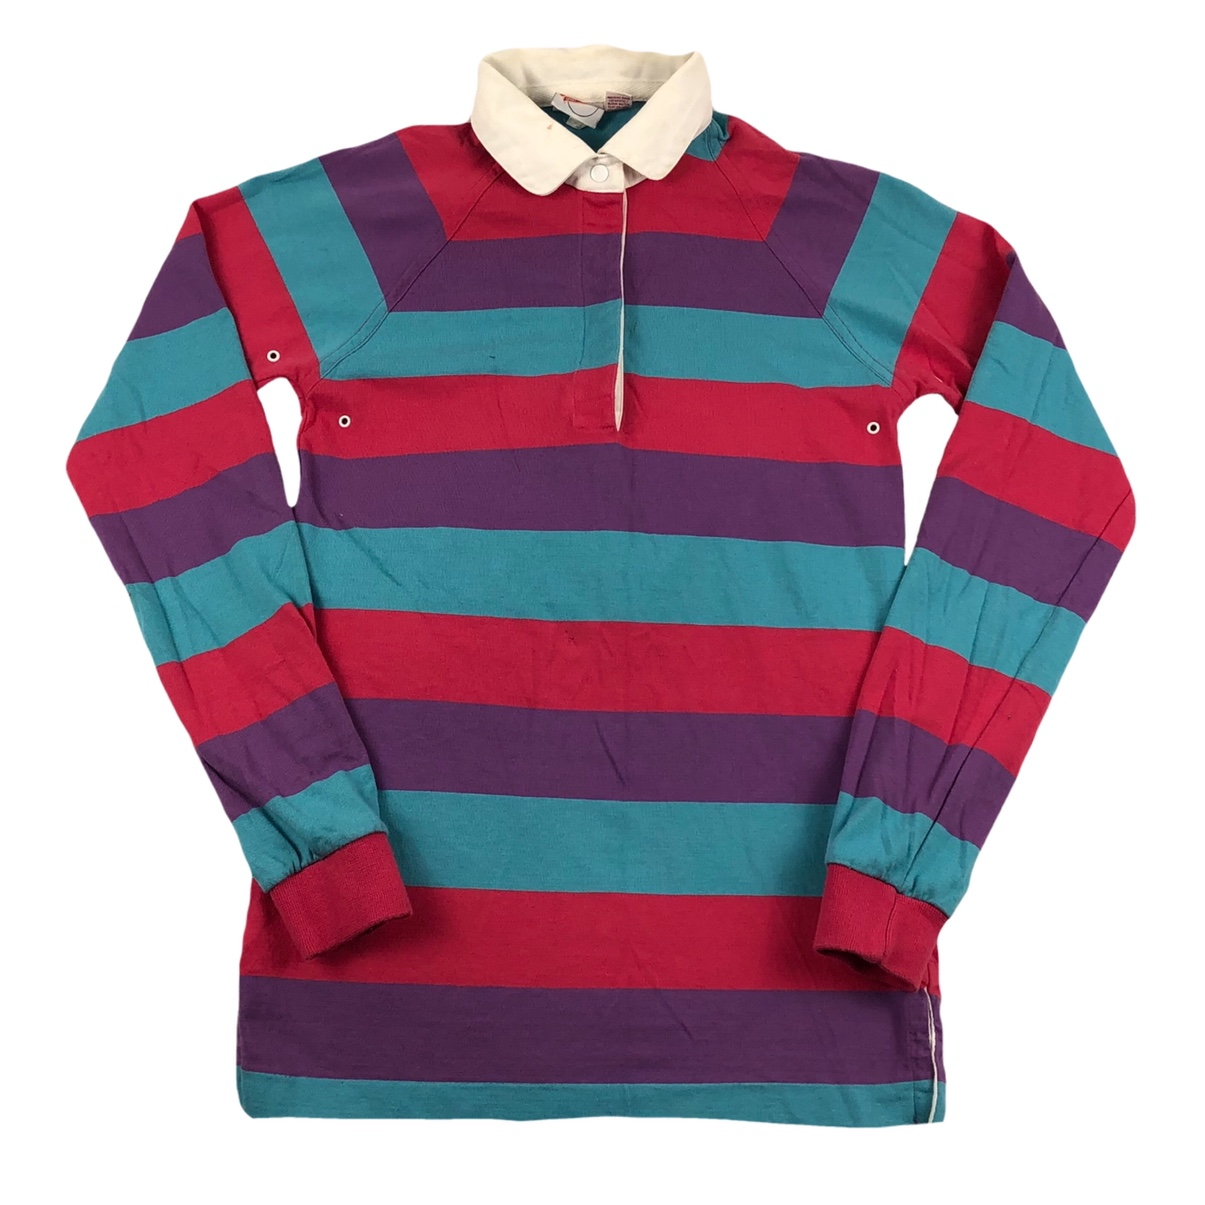 Product Image 1 - Vintage 90s rugby shirt size